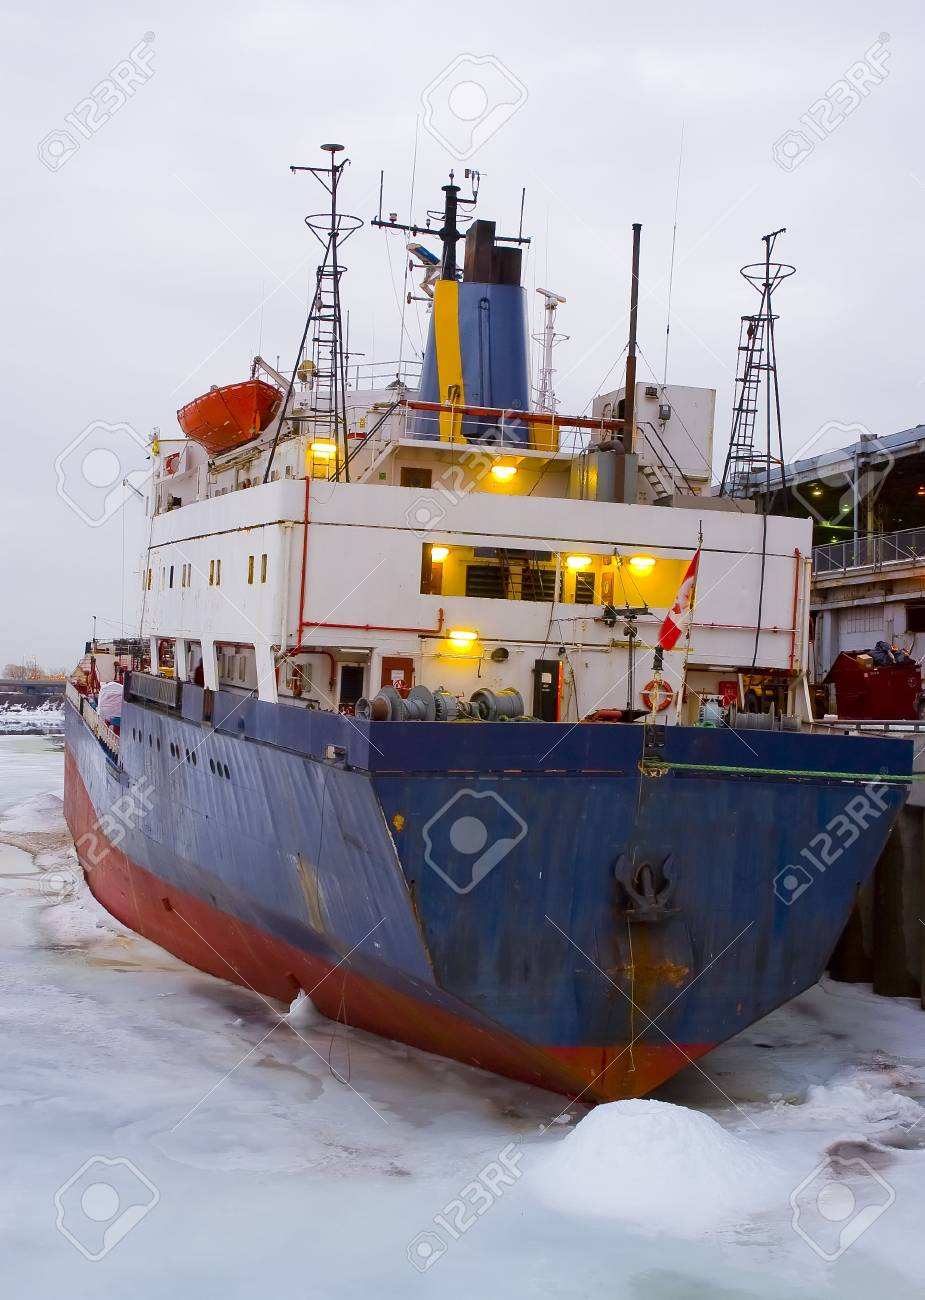 a rusty cargo ship prisoner of ice